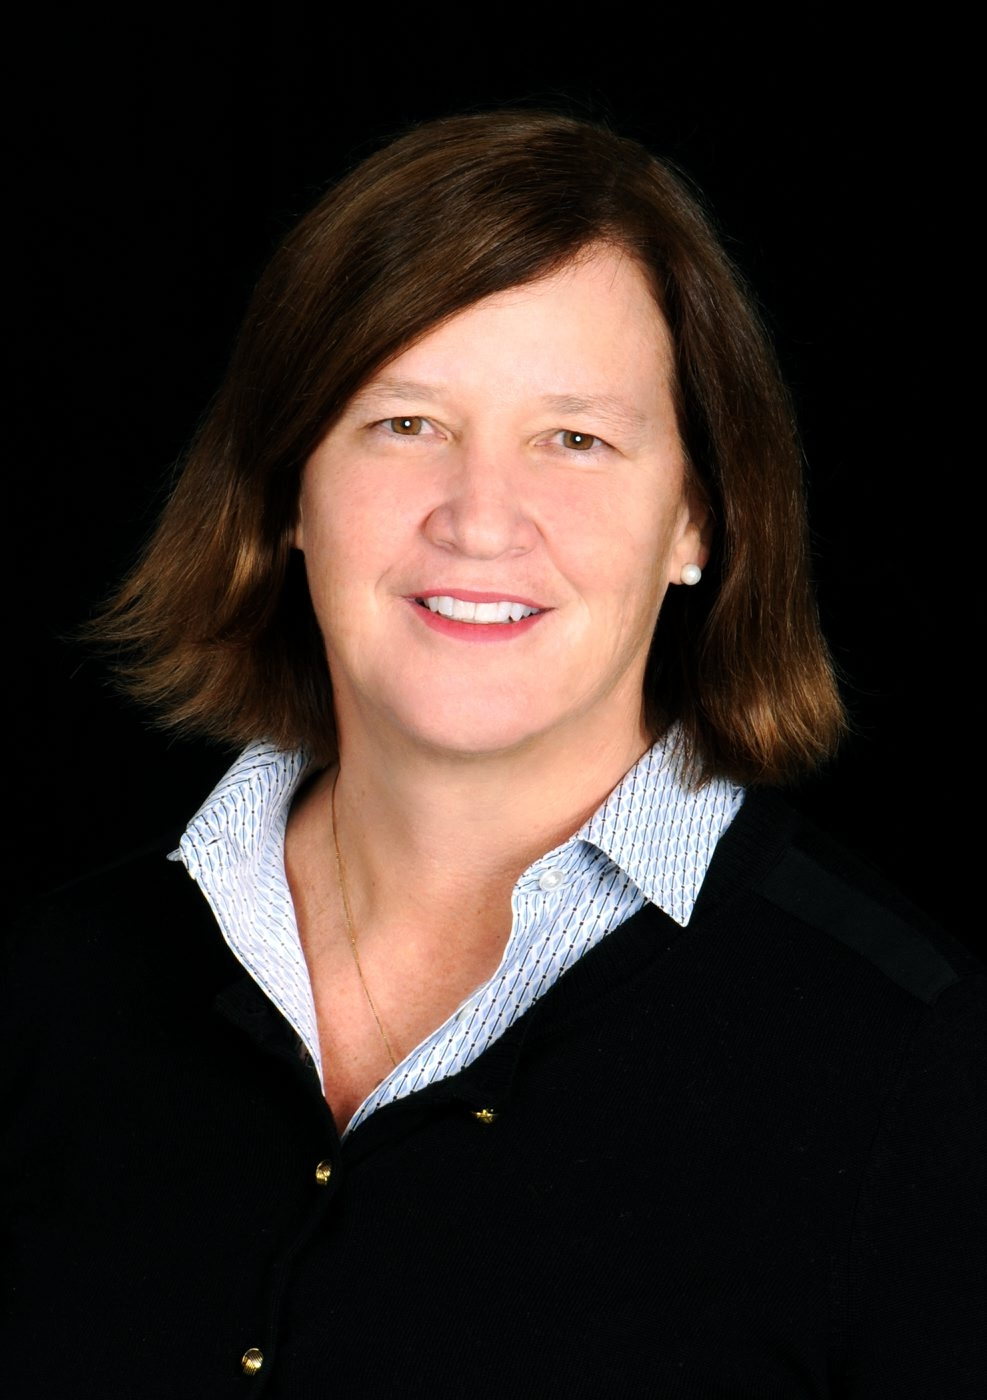 Helen Ladds Marlette was named head of school at Buffalo Seminary.